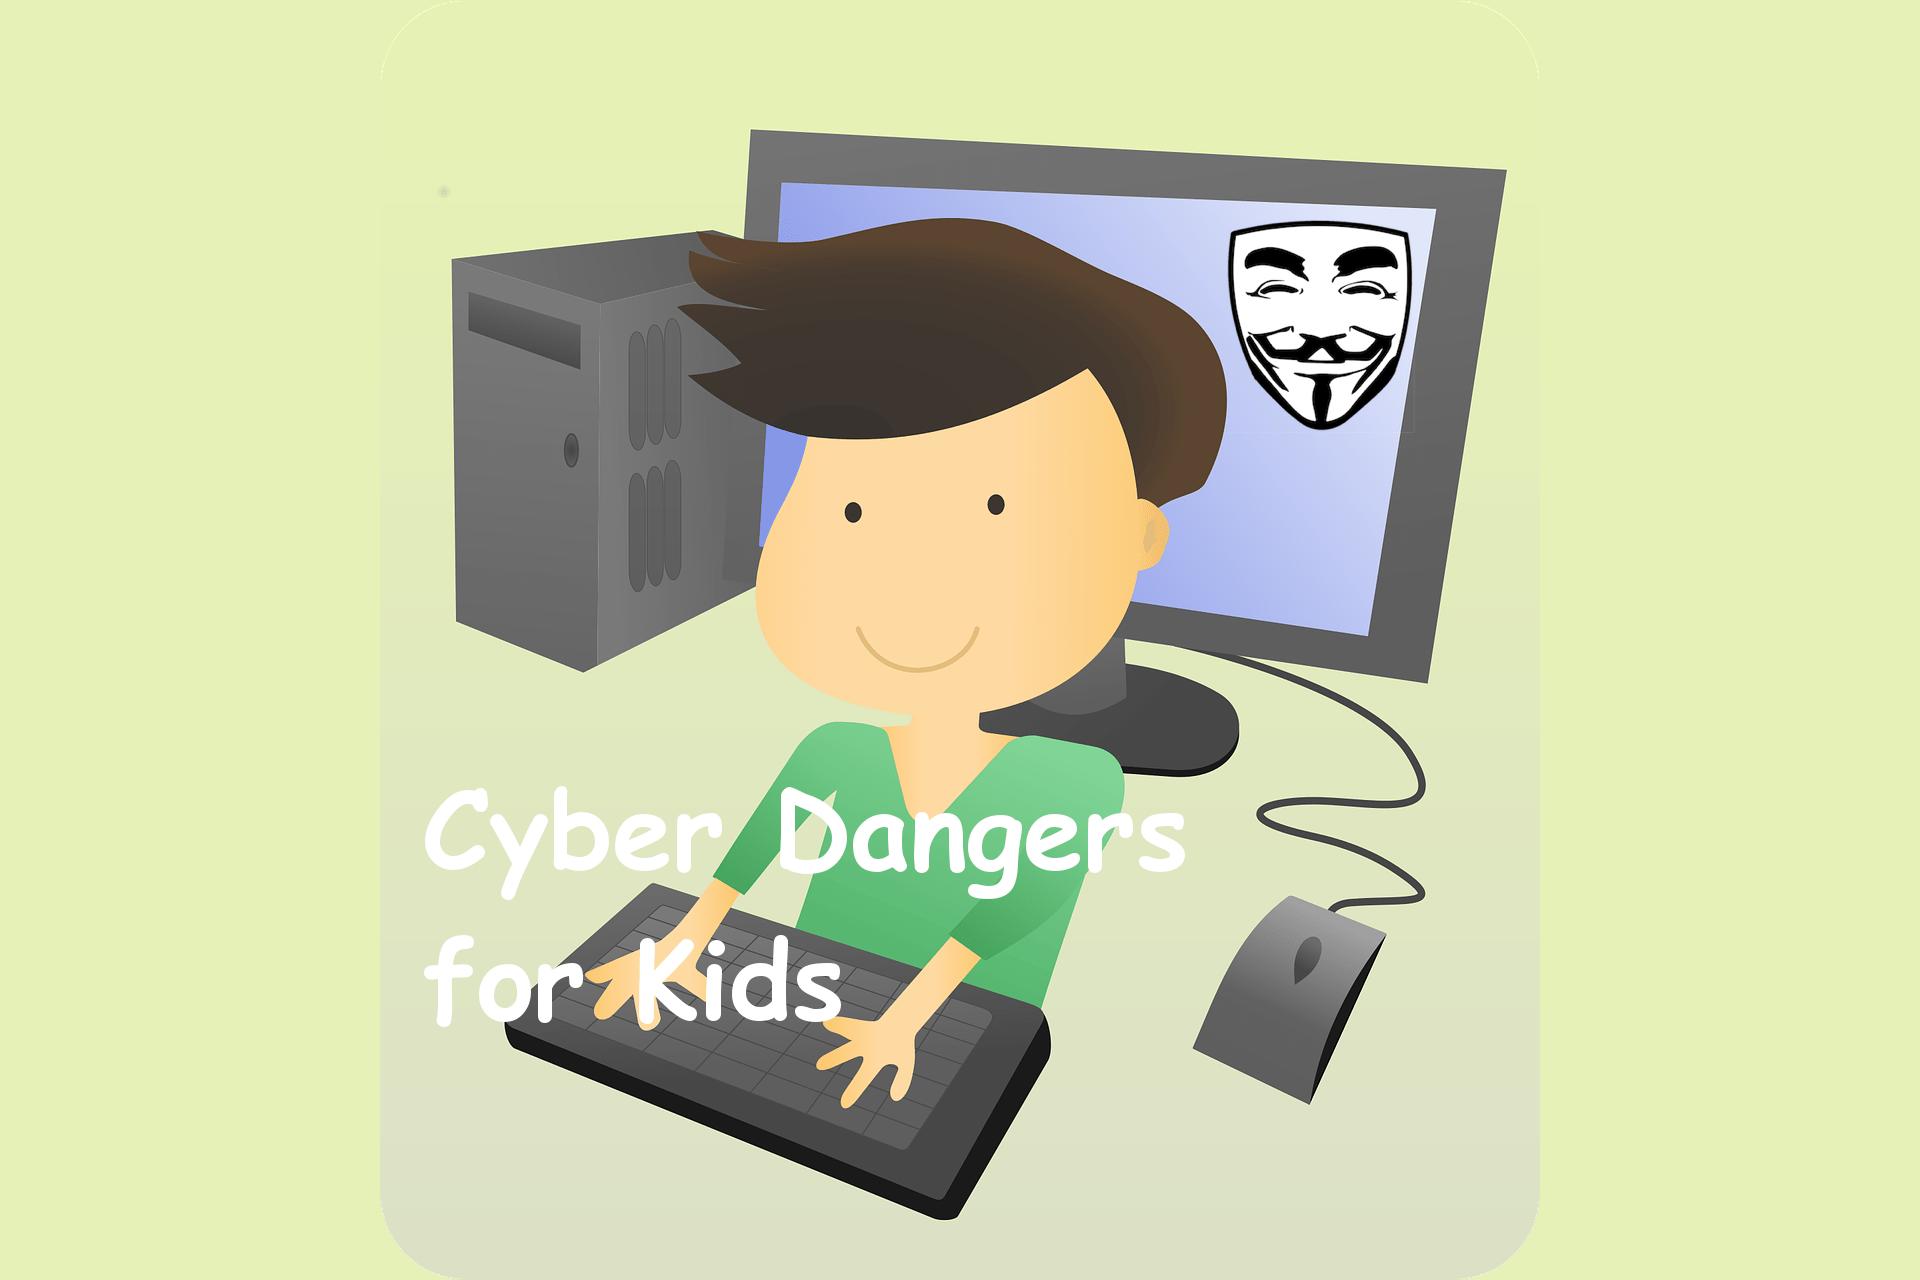 Cyber Dangers for Kids